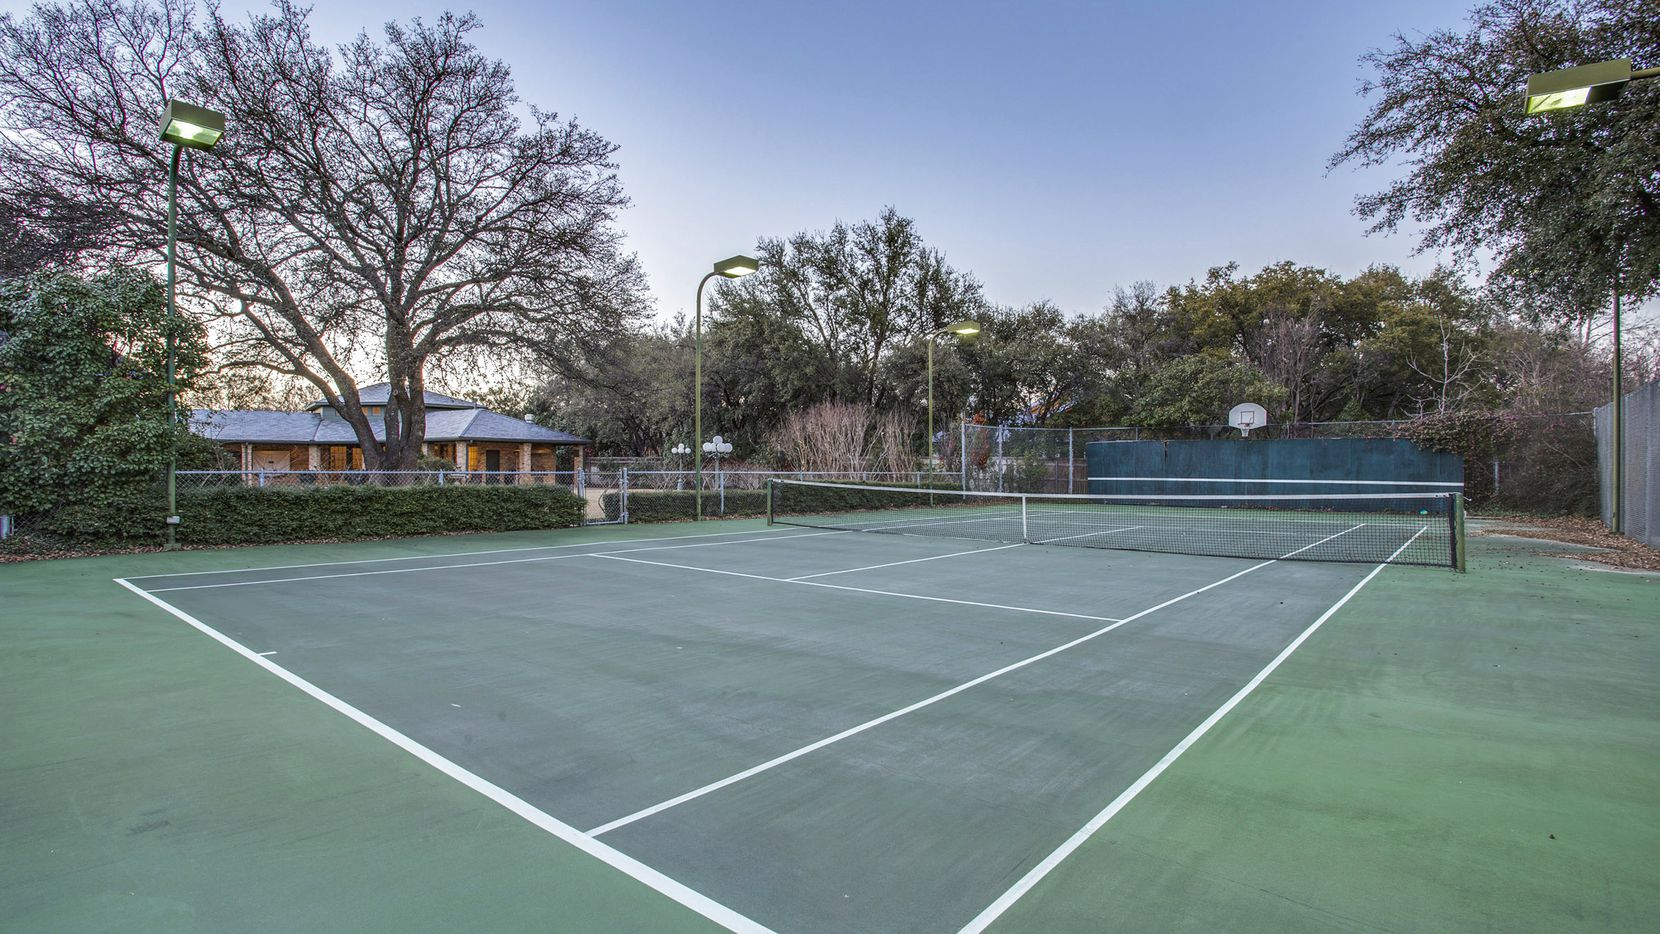 Offered for $2,749,900, the estate at 5609 Willow Bend Court features six bedrooms, a tennis court, guest house and renovated apartment.